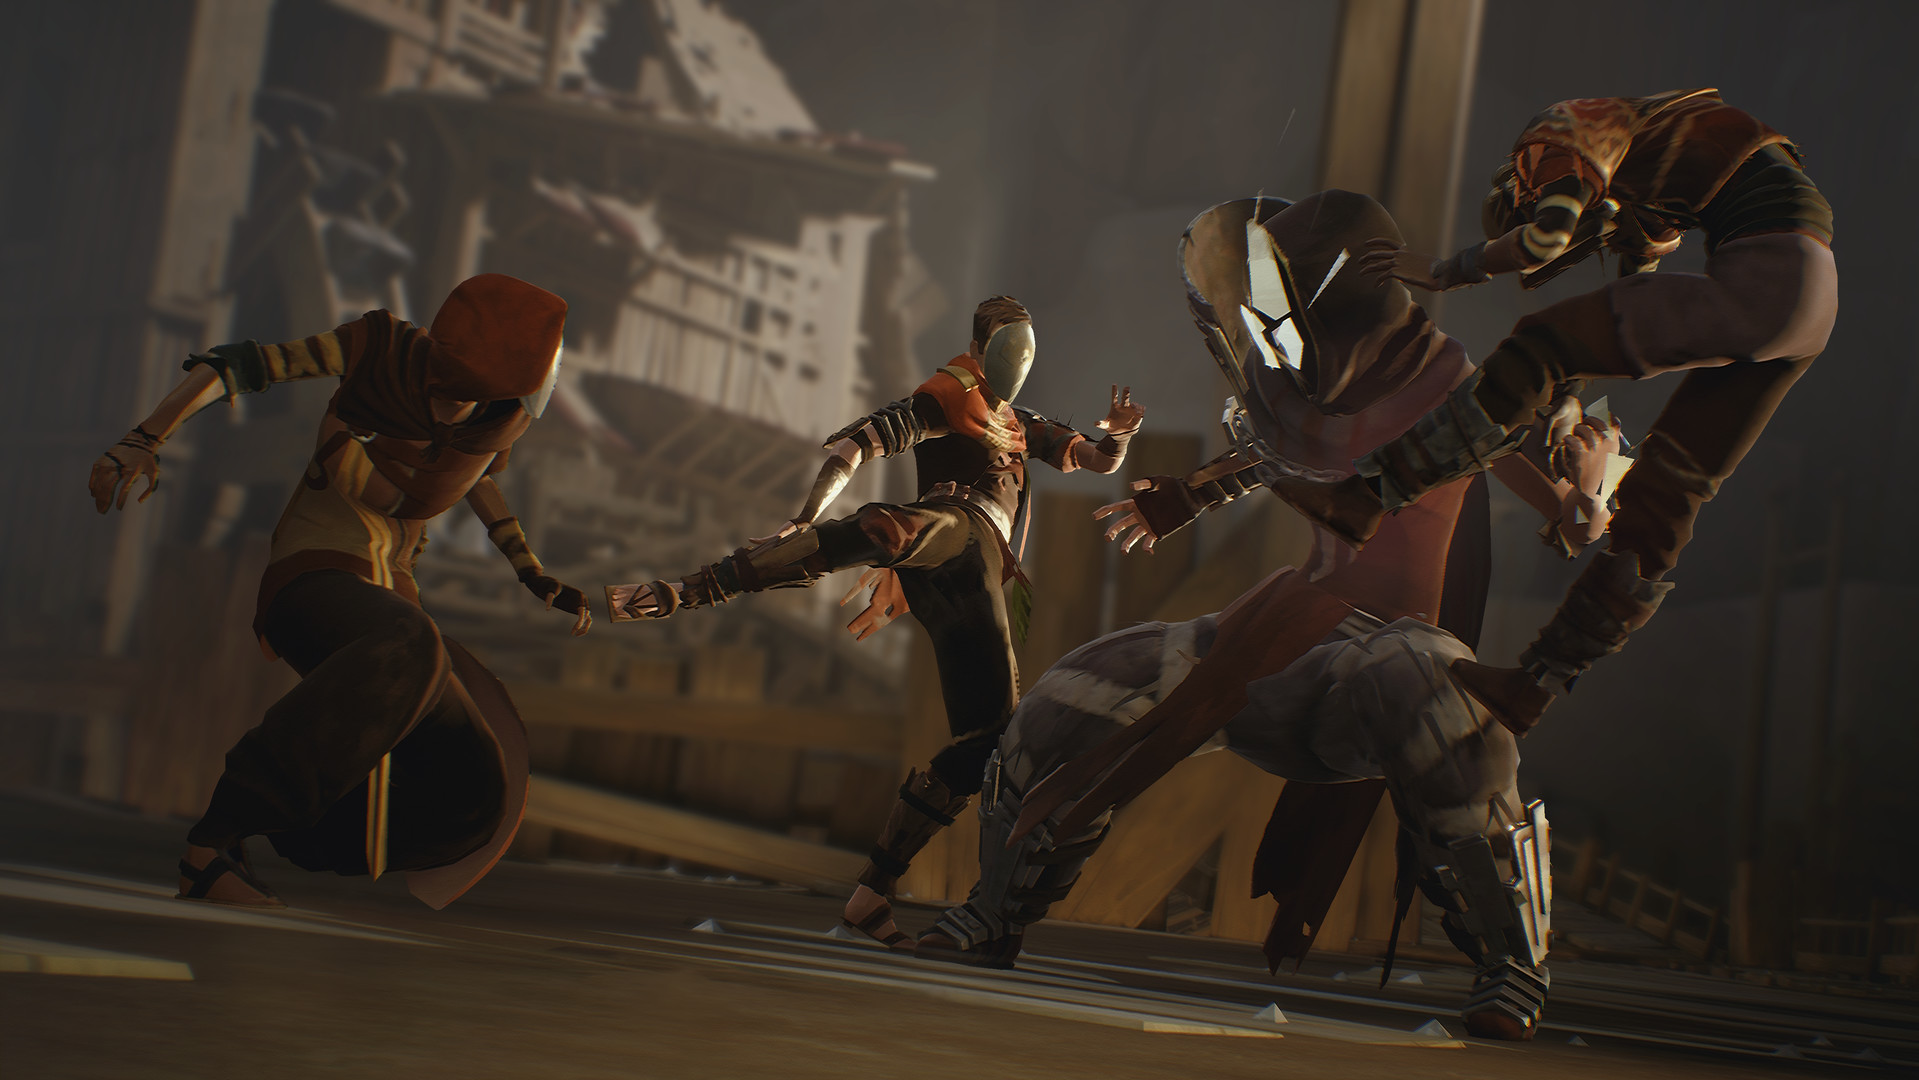 Find the best gaming PC for Absolver